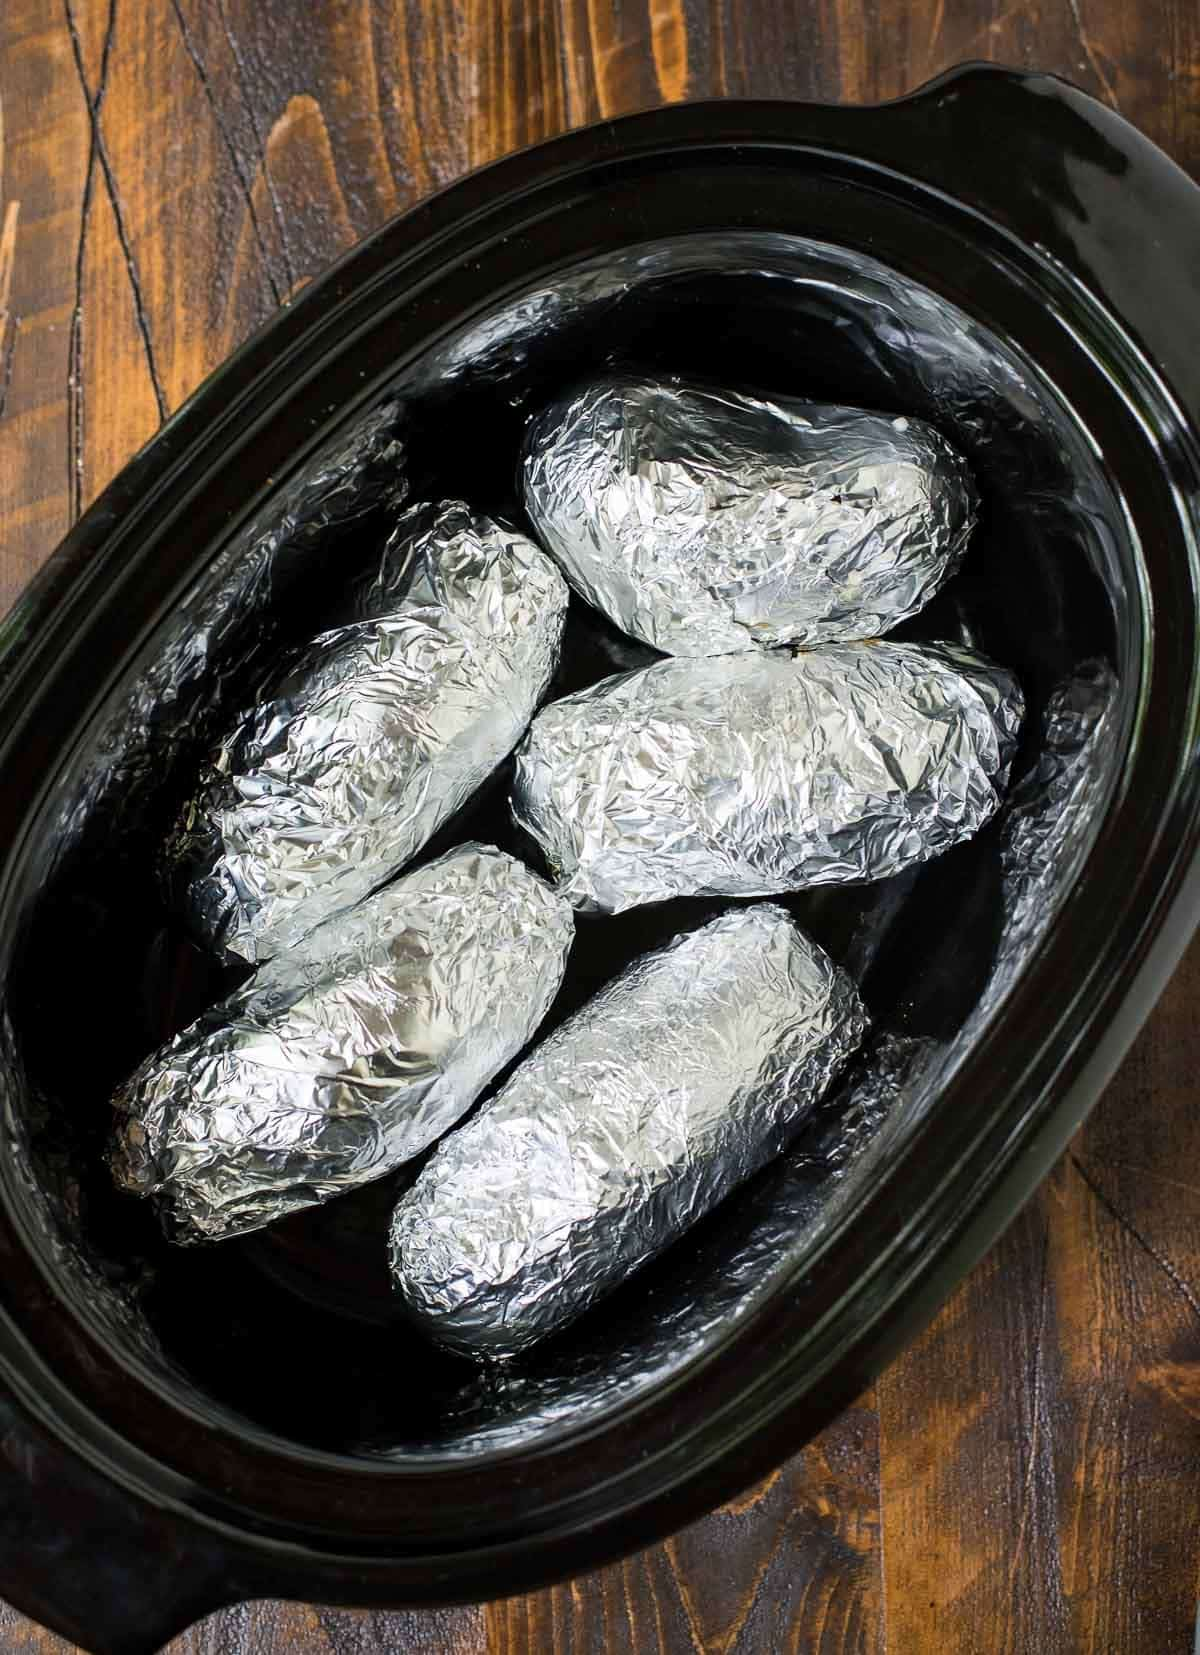 This trick to make Crock Pot Baked Potatoes is brilliant! Fluffy, delicious baked potatoes. No need to heat up your kitchen with this easy slow cooker baked potatoes recipe. @wellplated